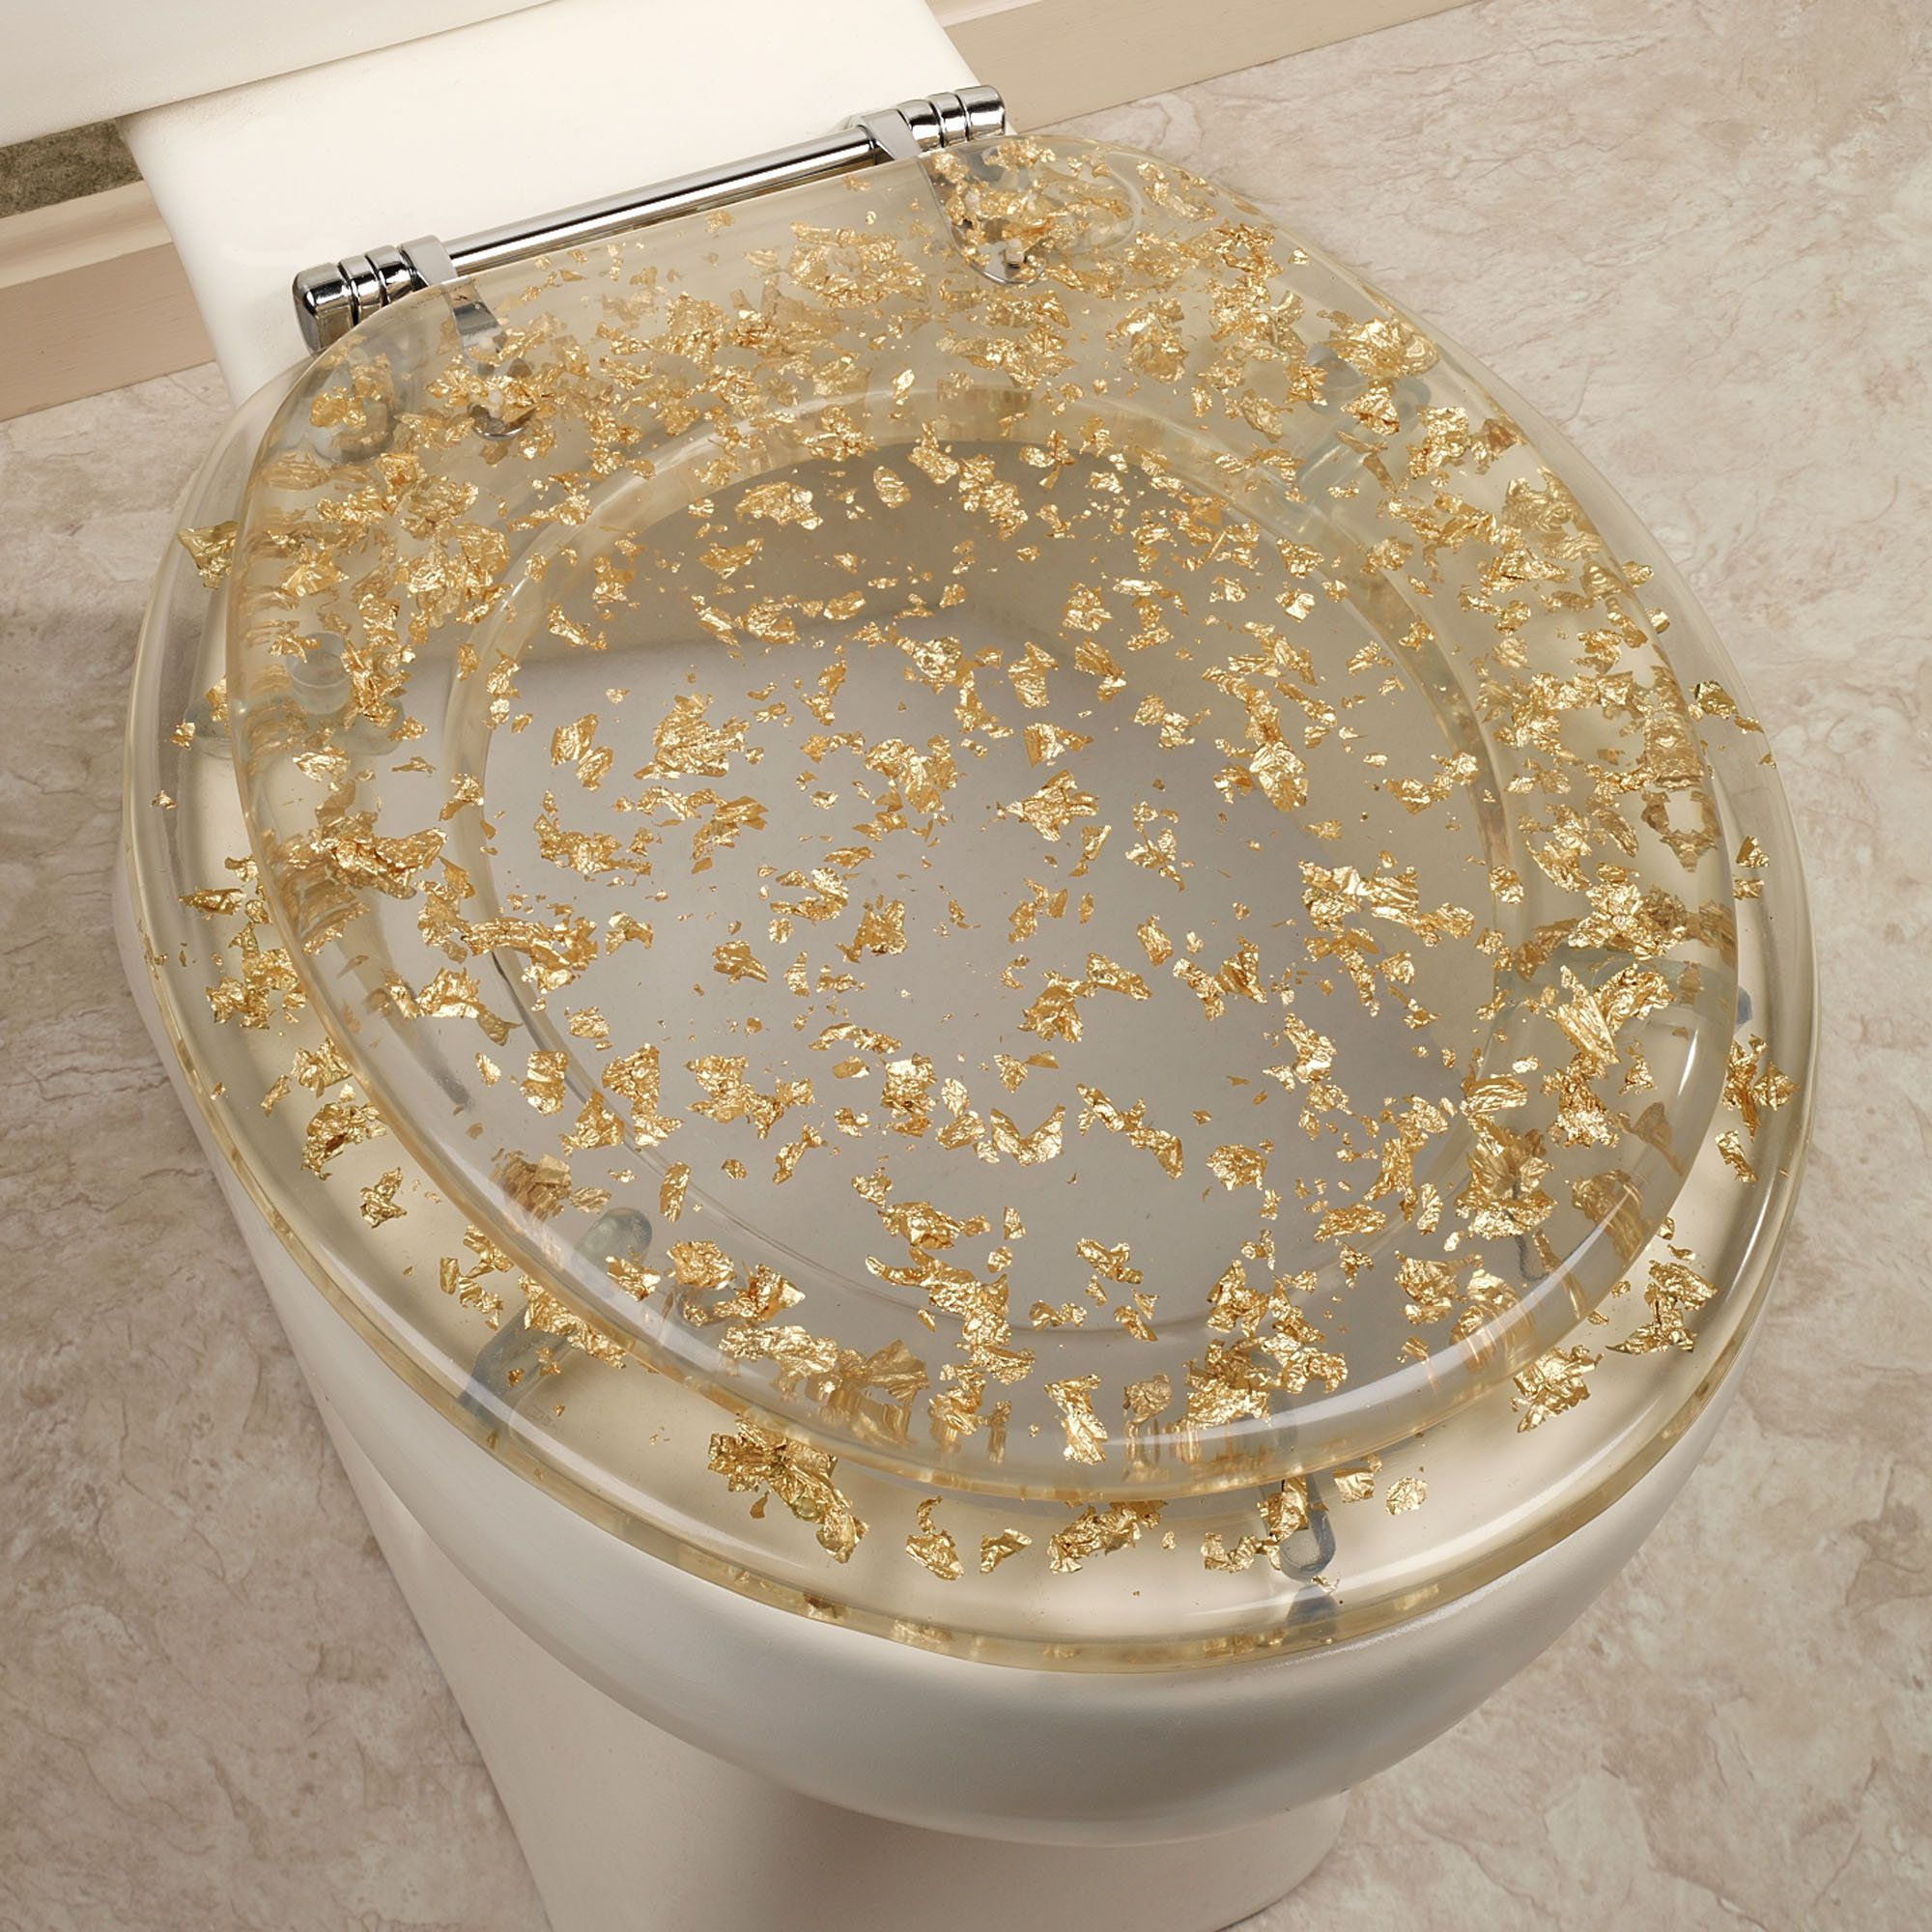 gold foil toilet seat clear so classy and so funny  home decor  - contemporary and cool the gold foil standard toilet seat will dazzle withits unique metallic accents crafted from resin this decorative toiletseat